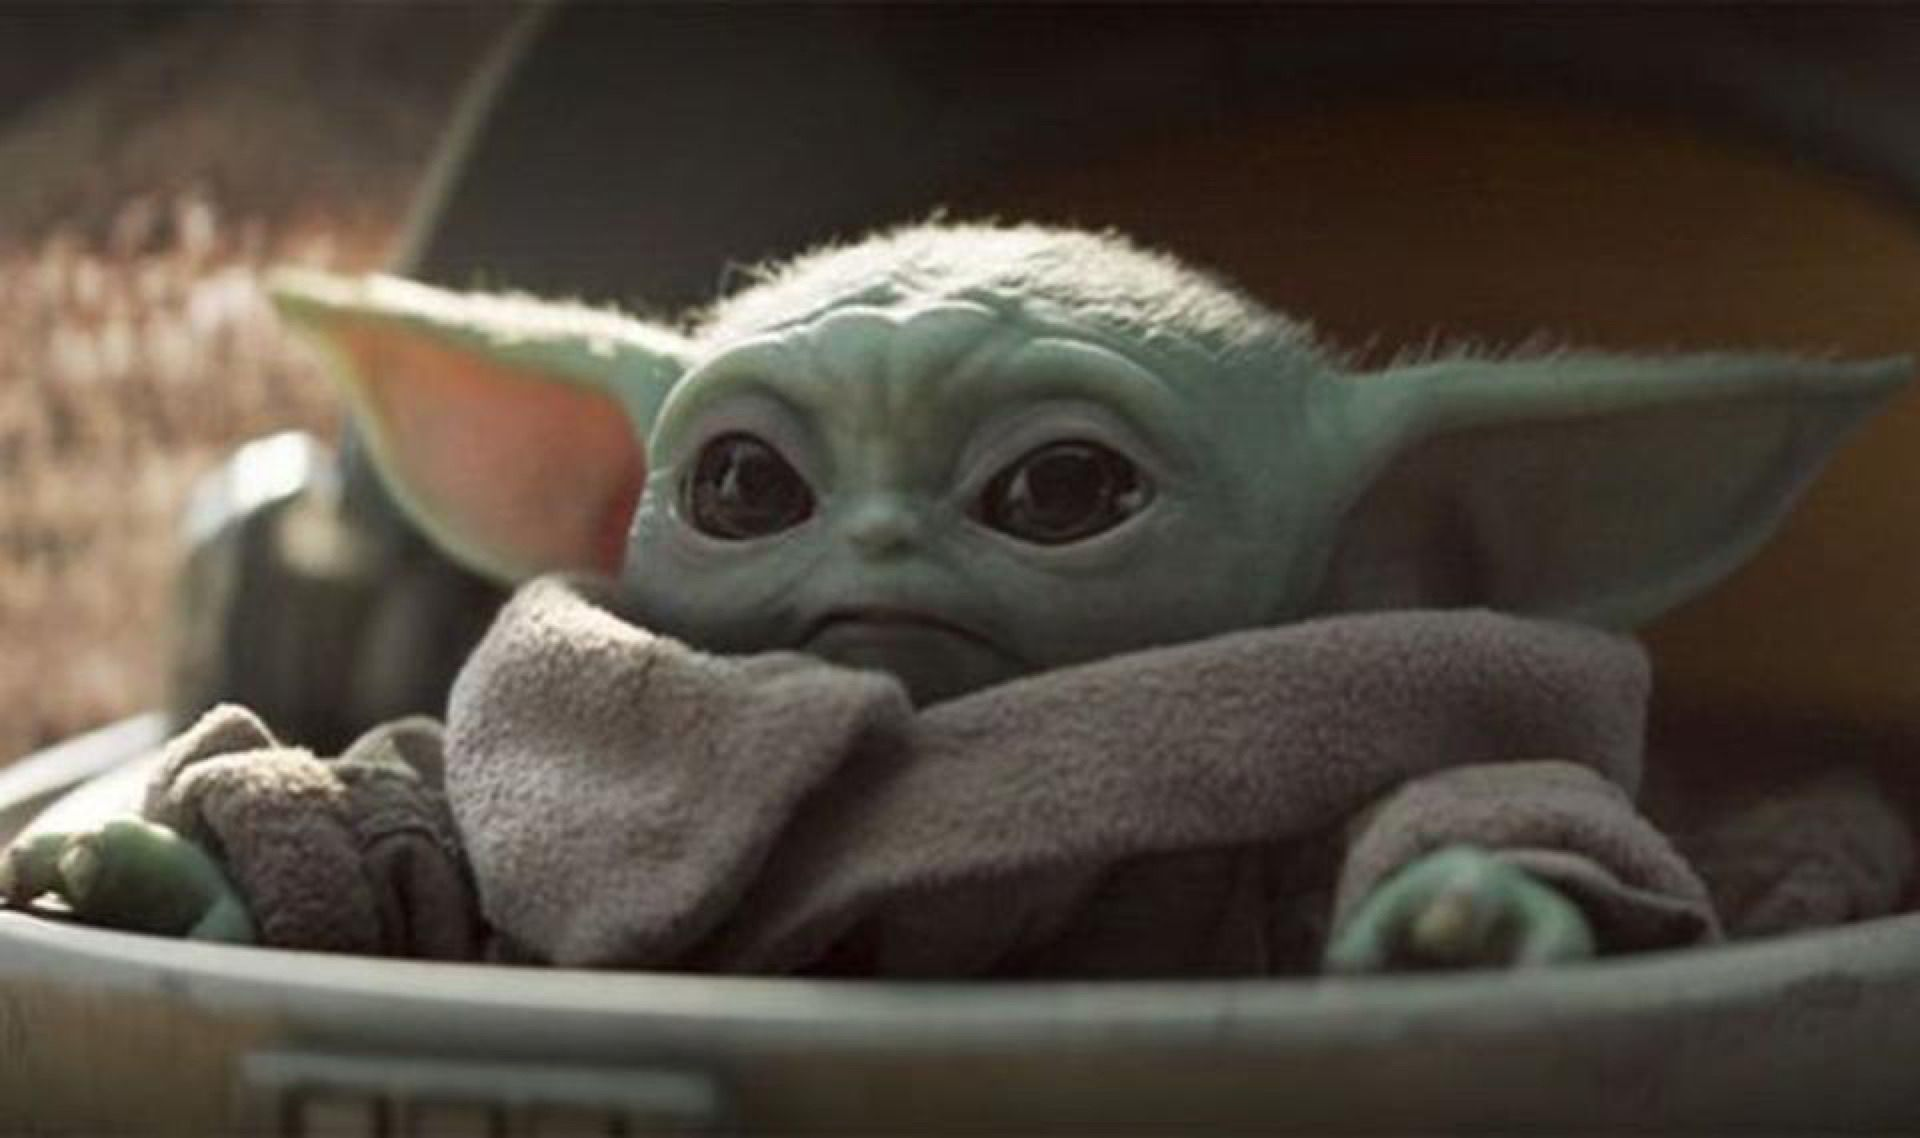 Why Baby Yoda should scare Michael Bloomberg and Deval Patrick